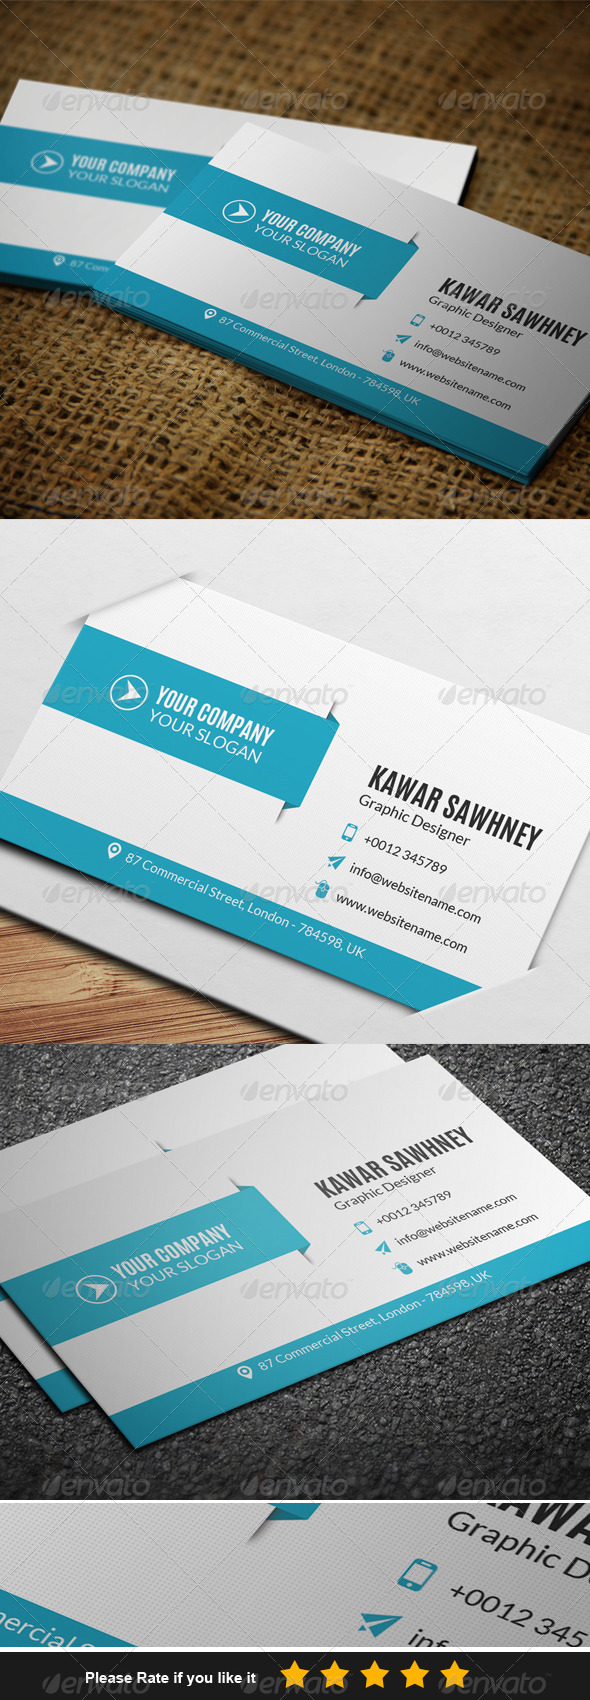 GraphicRiver Corporate Business Card 1 7646575